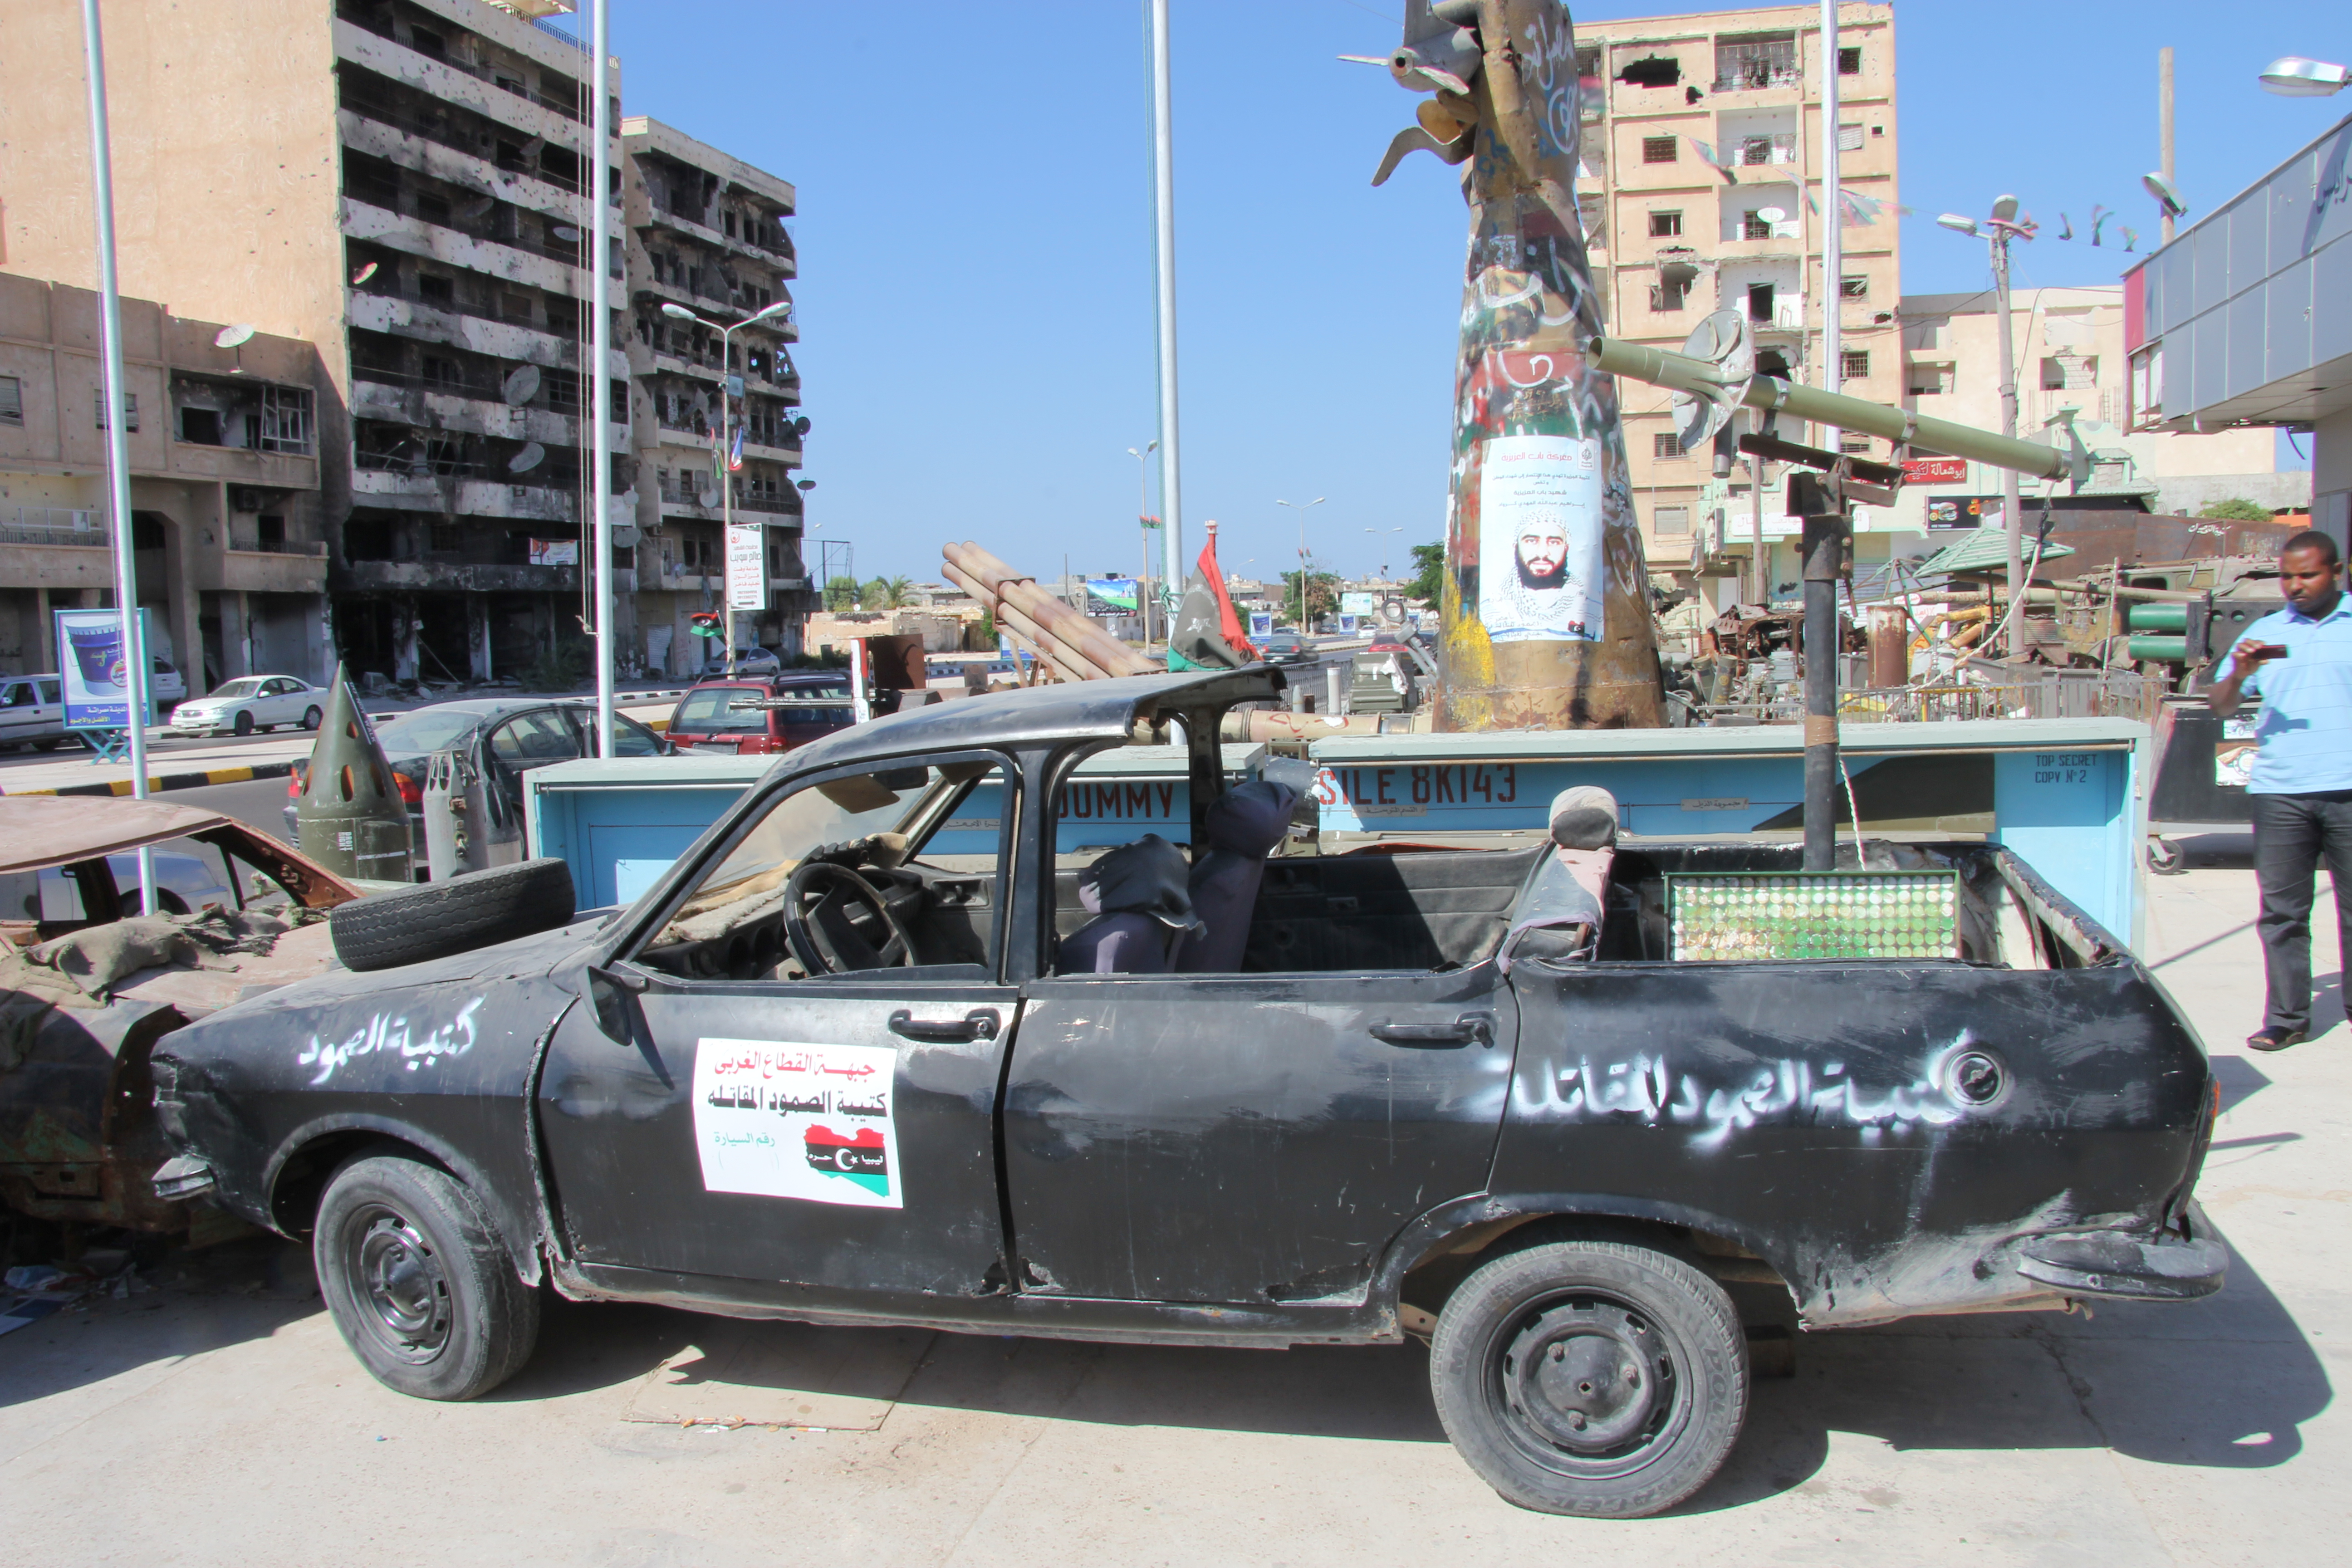 A 4x4 converted to an RPG launcher in Misrata,